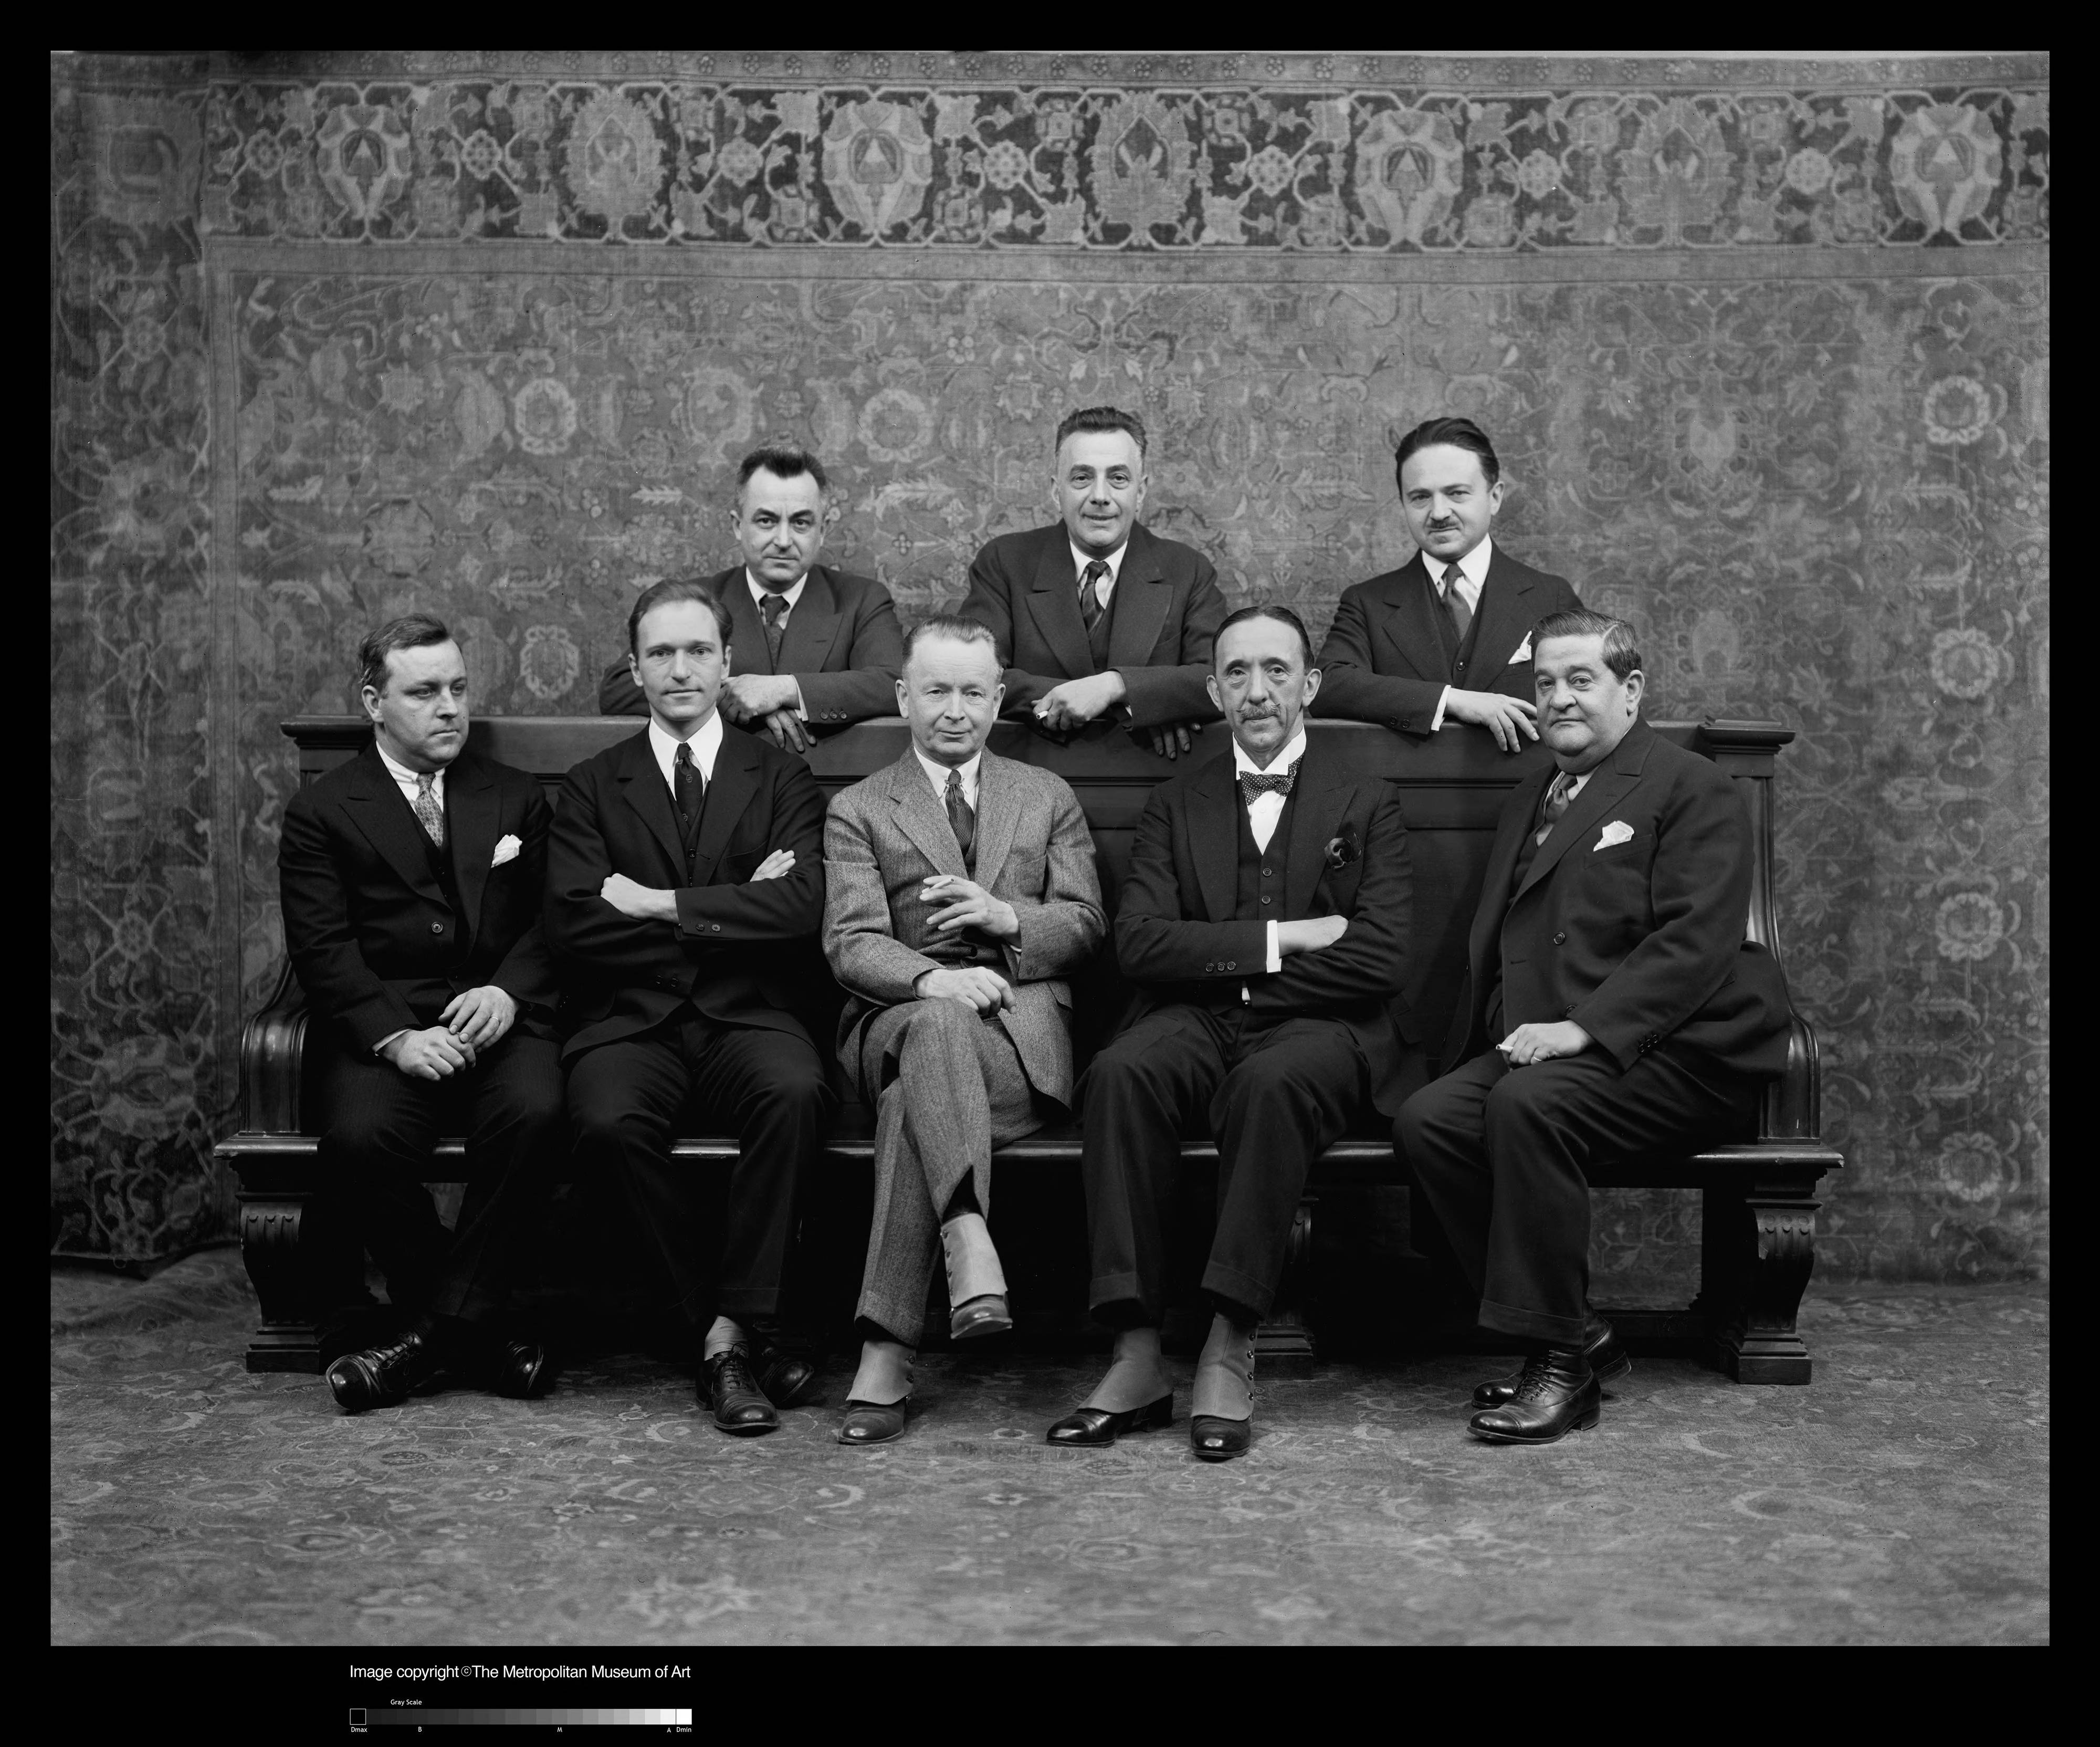 The Cooperating Committee for The Architect and the Industrial Arts exhibition (1929). Image: The Metropolitan Museum of Art.